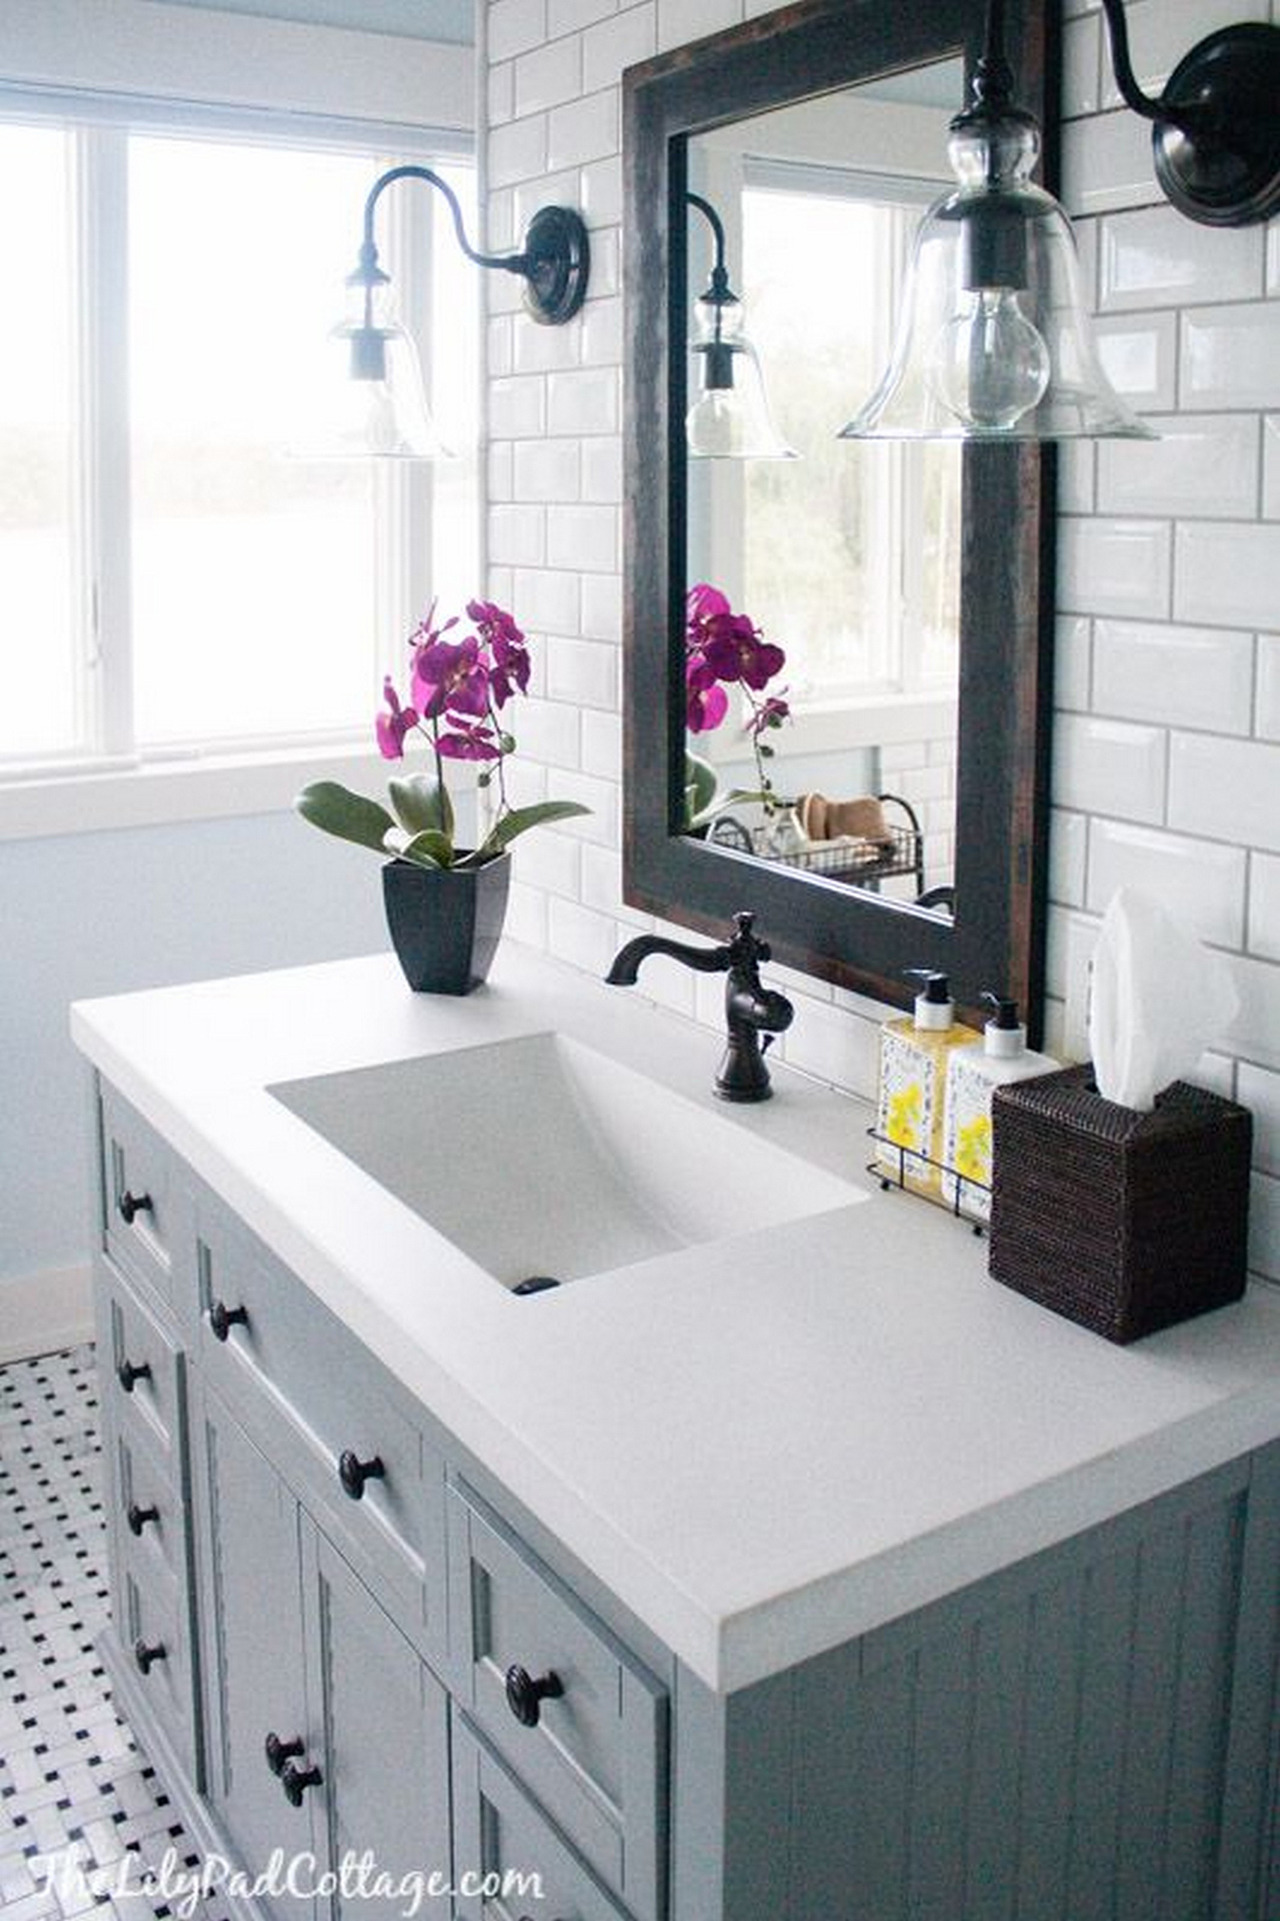 Accessories for Bathroom Decoration Inspirational 25 Best Bathroom Decor Ideas and Designs that are Trendy In 2020